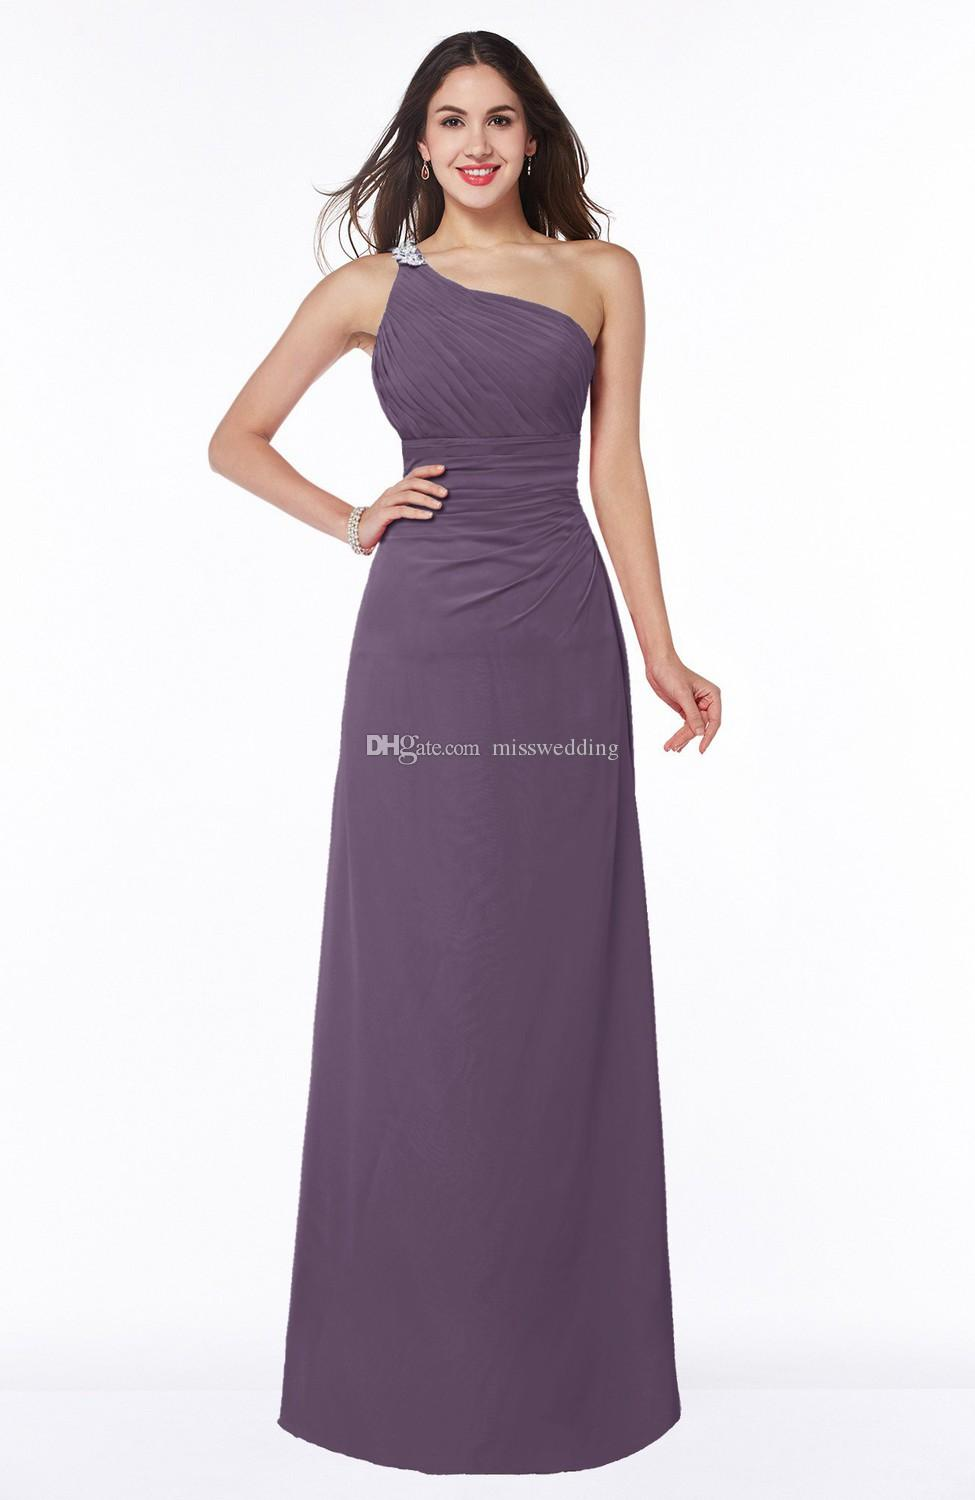 Latest Chiffon Bridesmaid One Shoulder Dress Pleated Beaded Strap Gown For  Bridesmaid Floor Length Good Quality Periwinkle Bridesmaid Dresses Plus  Size ... ed3e9c4516d2